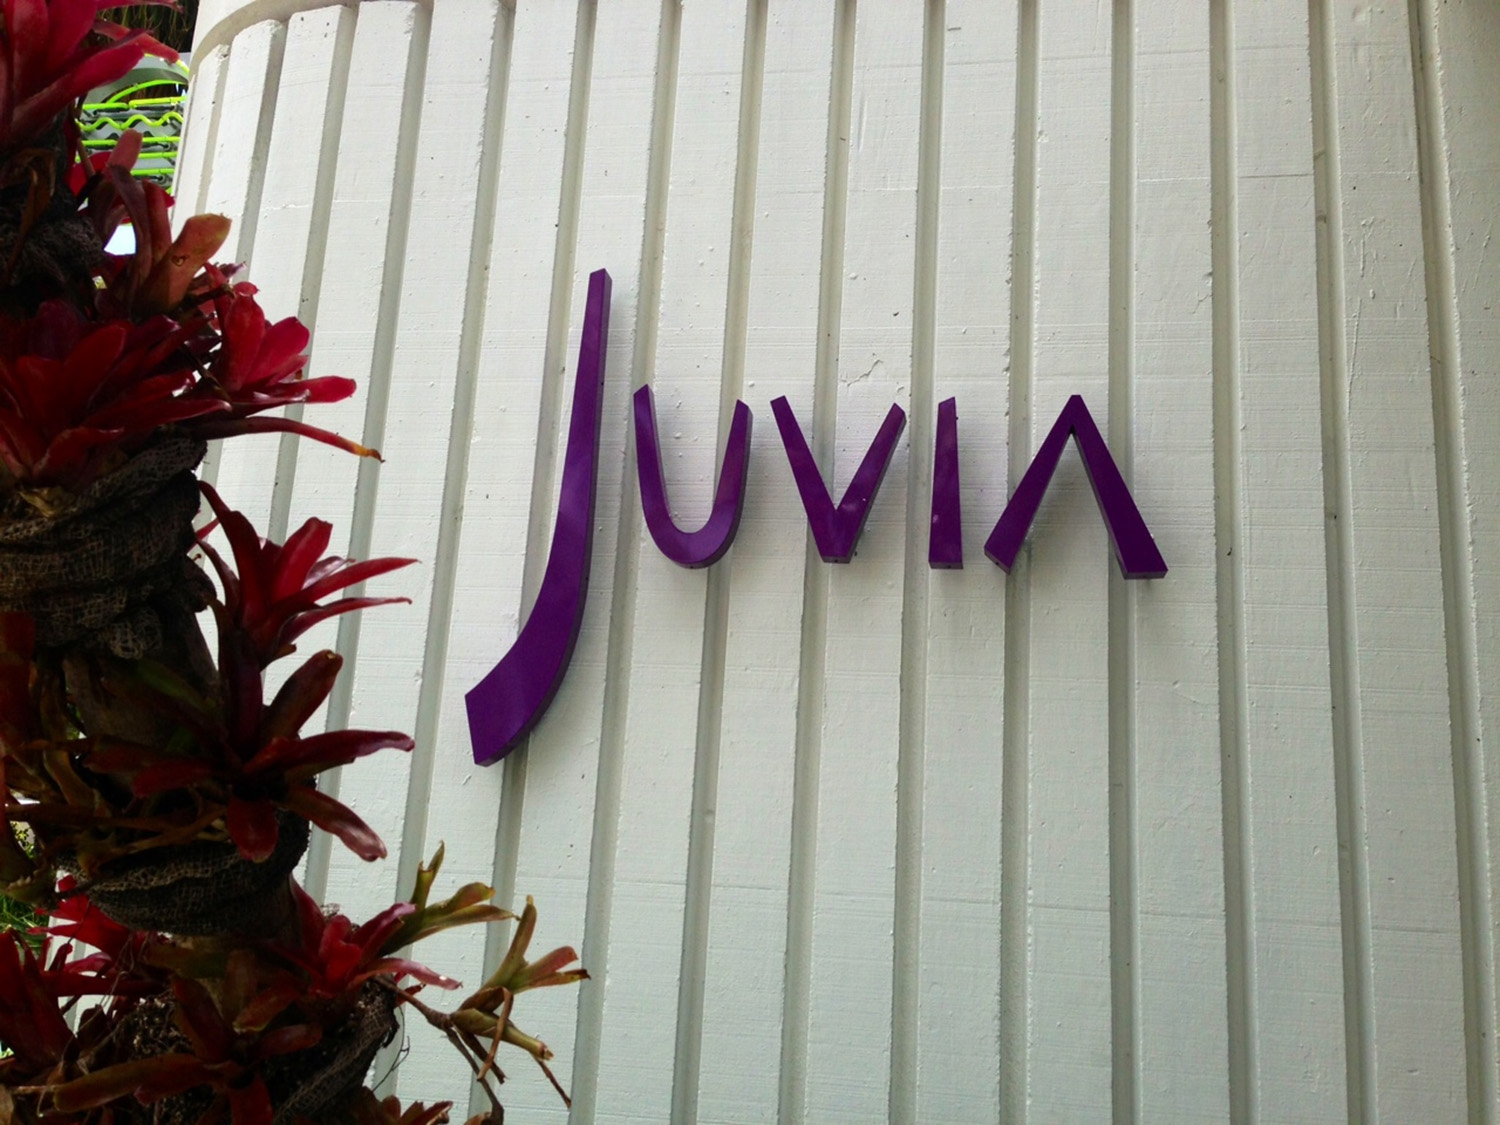 'Juvia' written in purple on an exterior white wall at Juvia restaurant